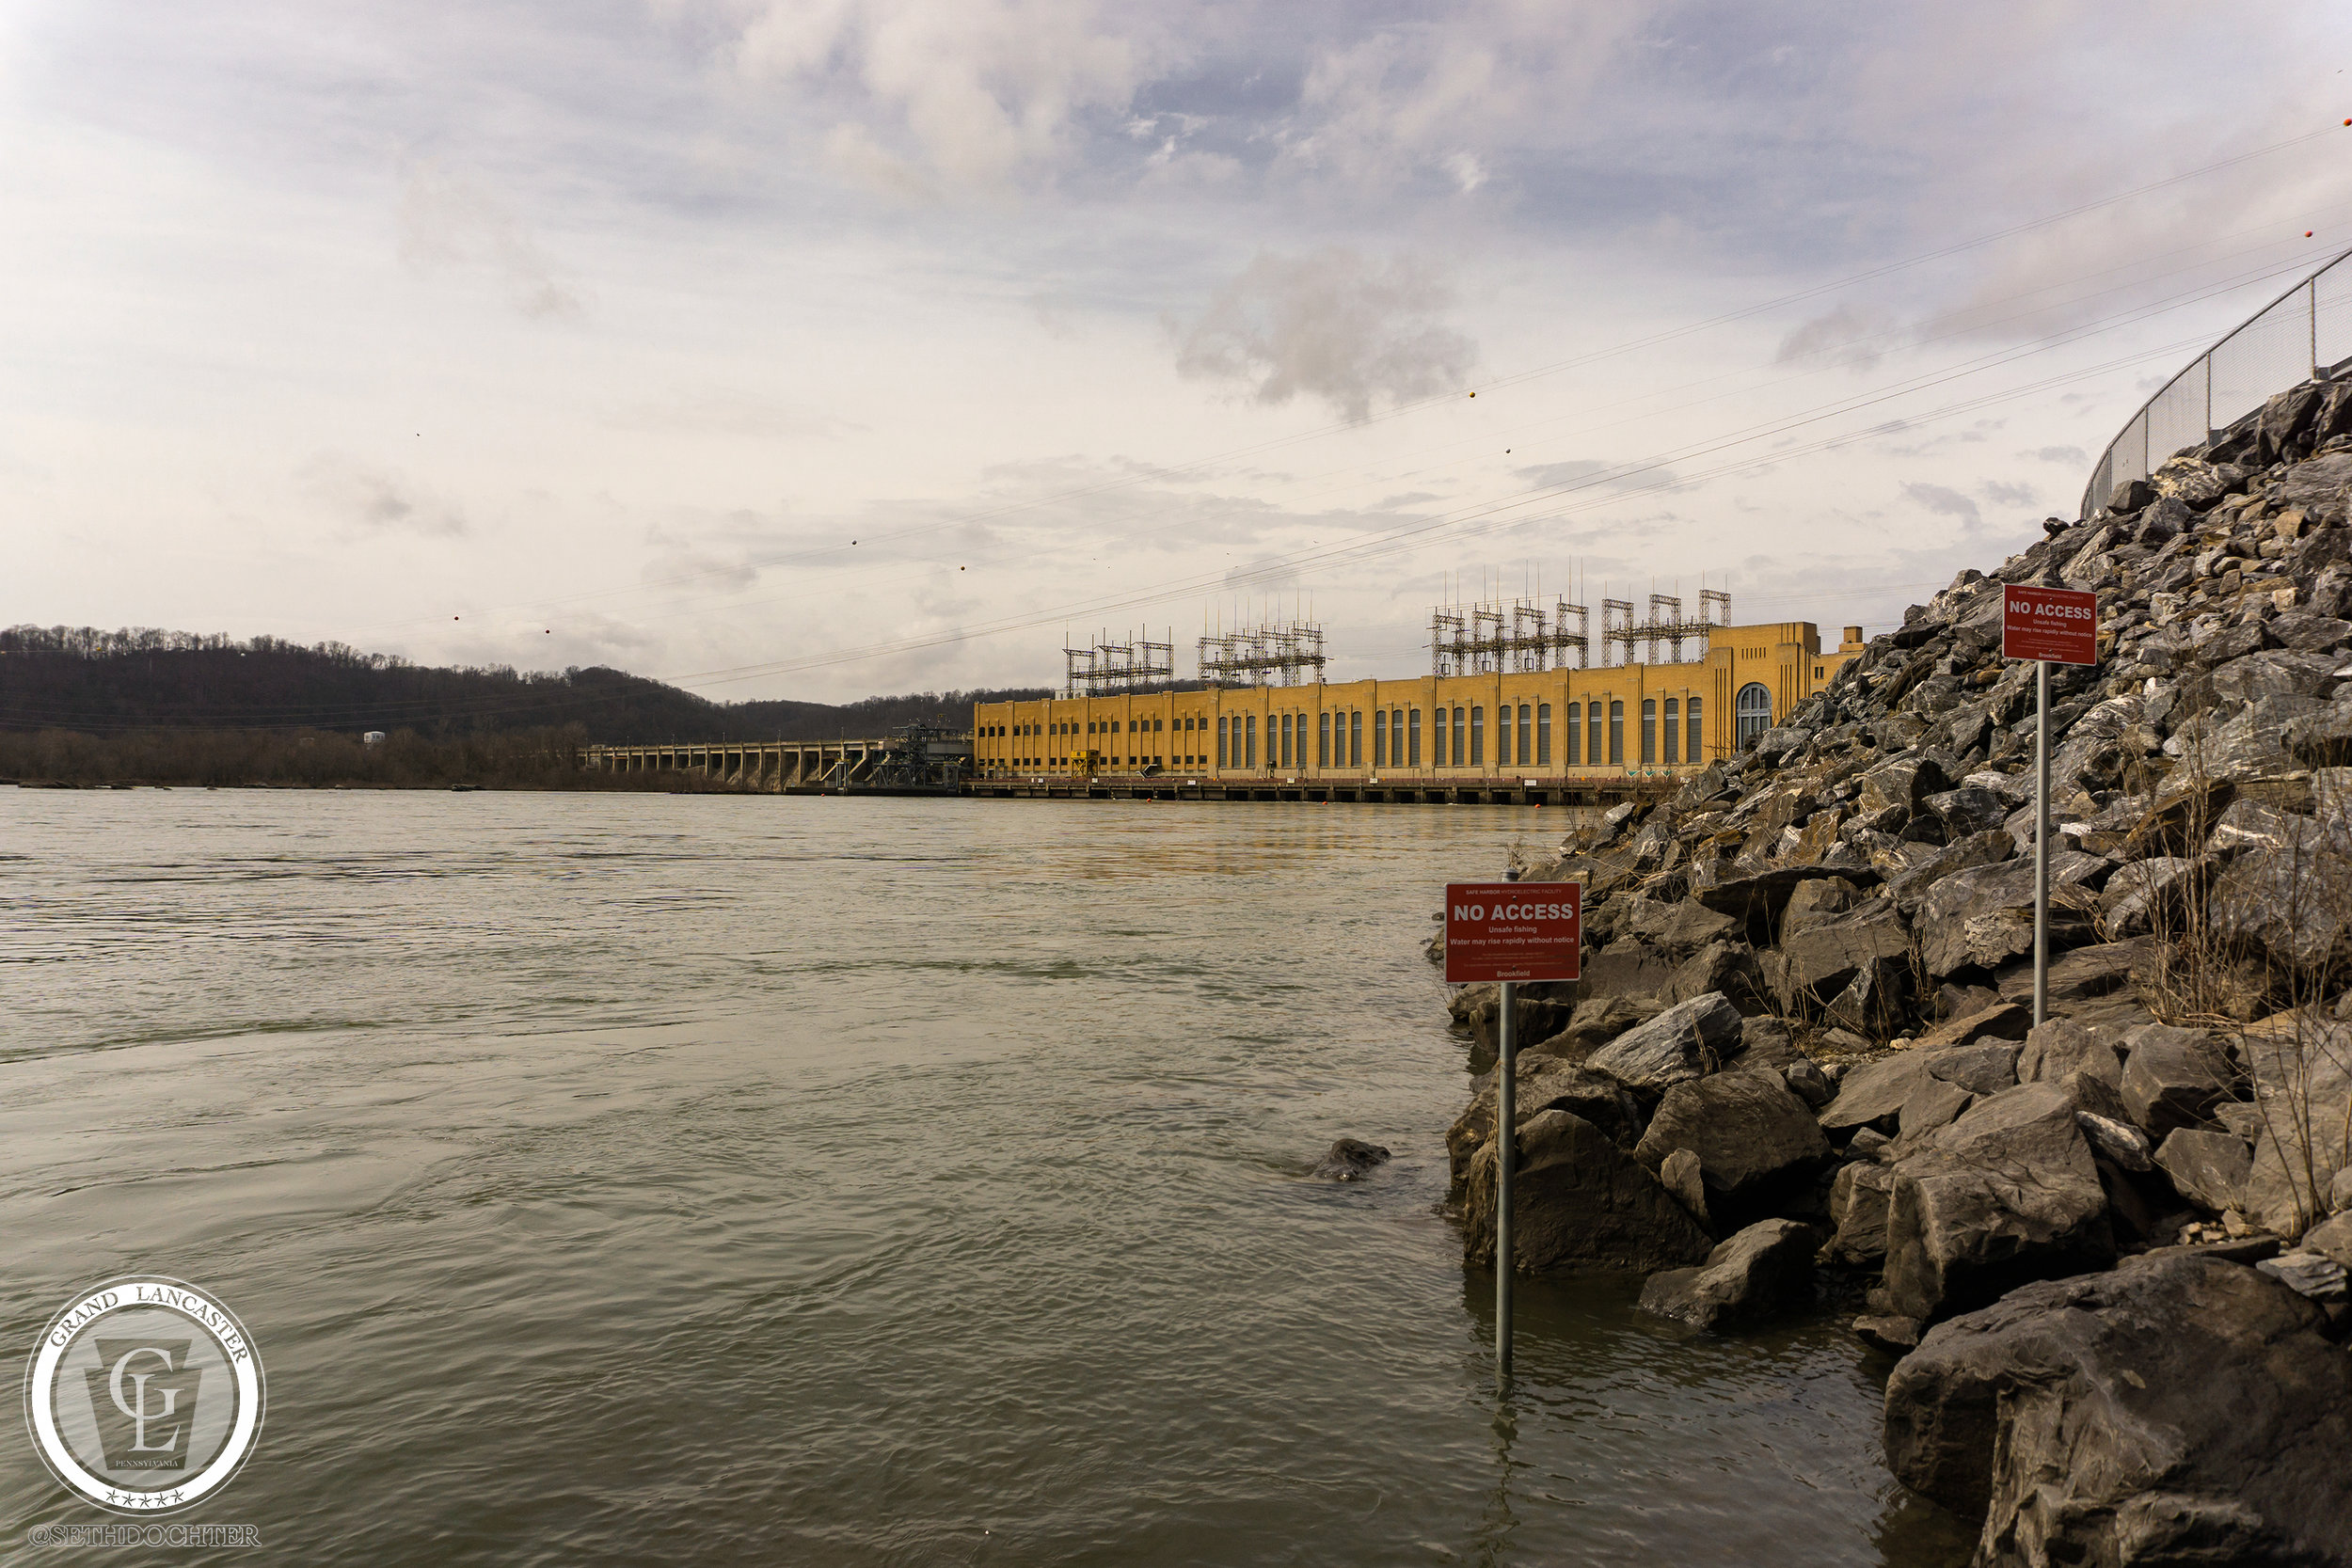 Safe Harbor Dam viewed from the point where the waters of the Conestoga River join the Susquehanna River.